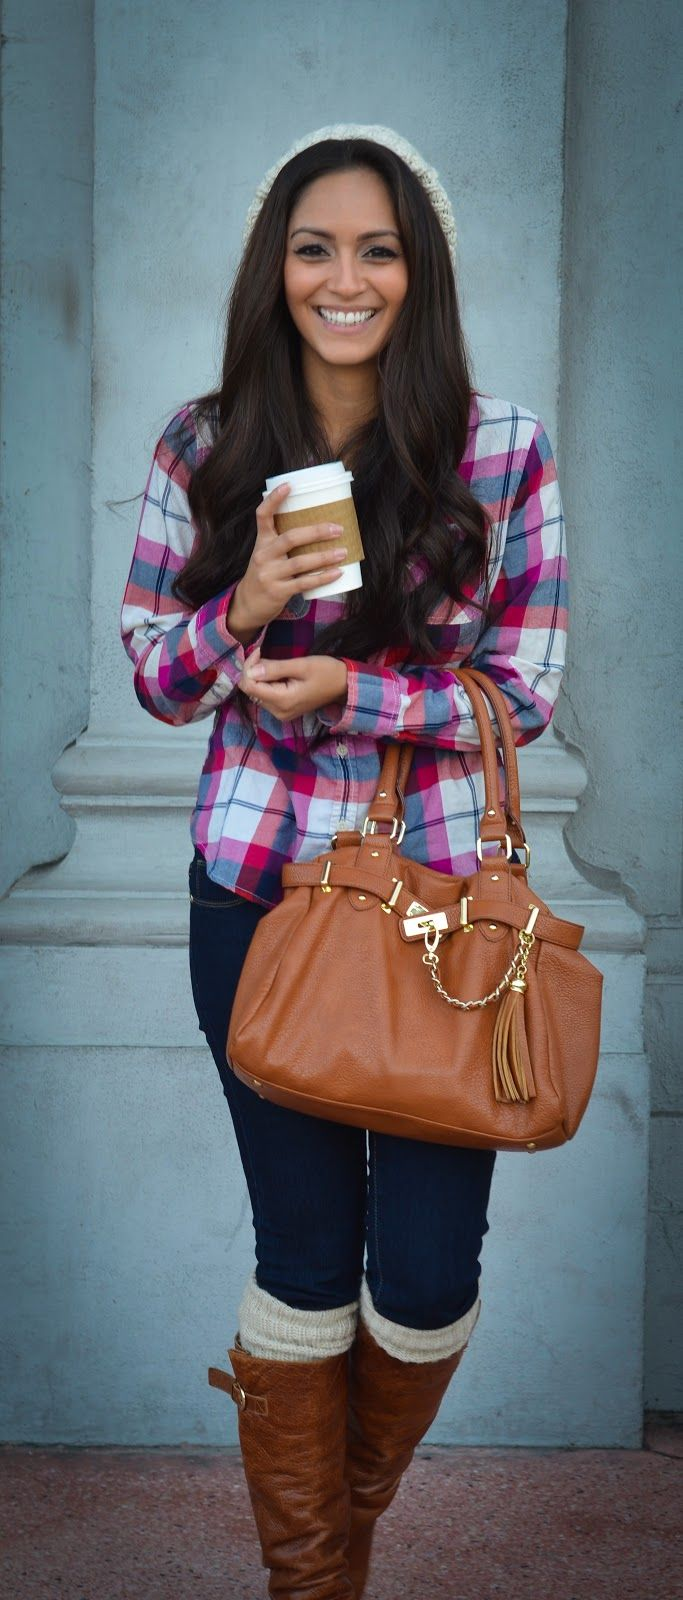 Ootd everyday plaid curvey friends at school pinterest plaid